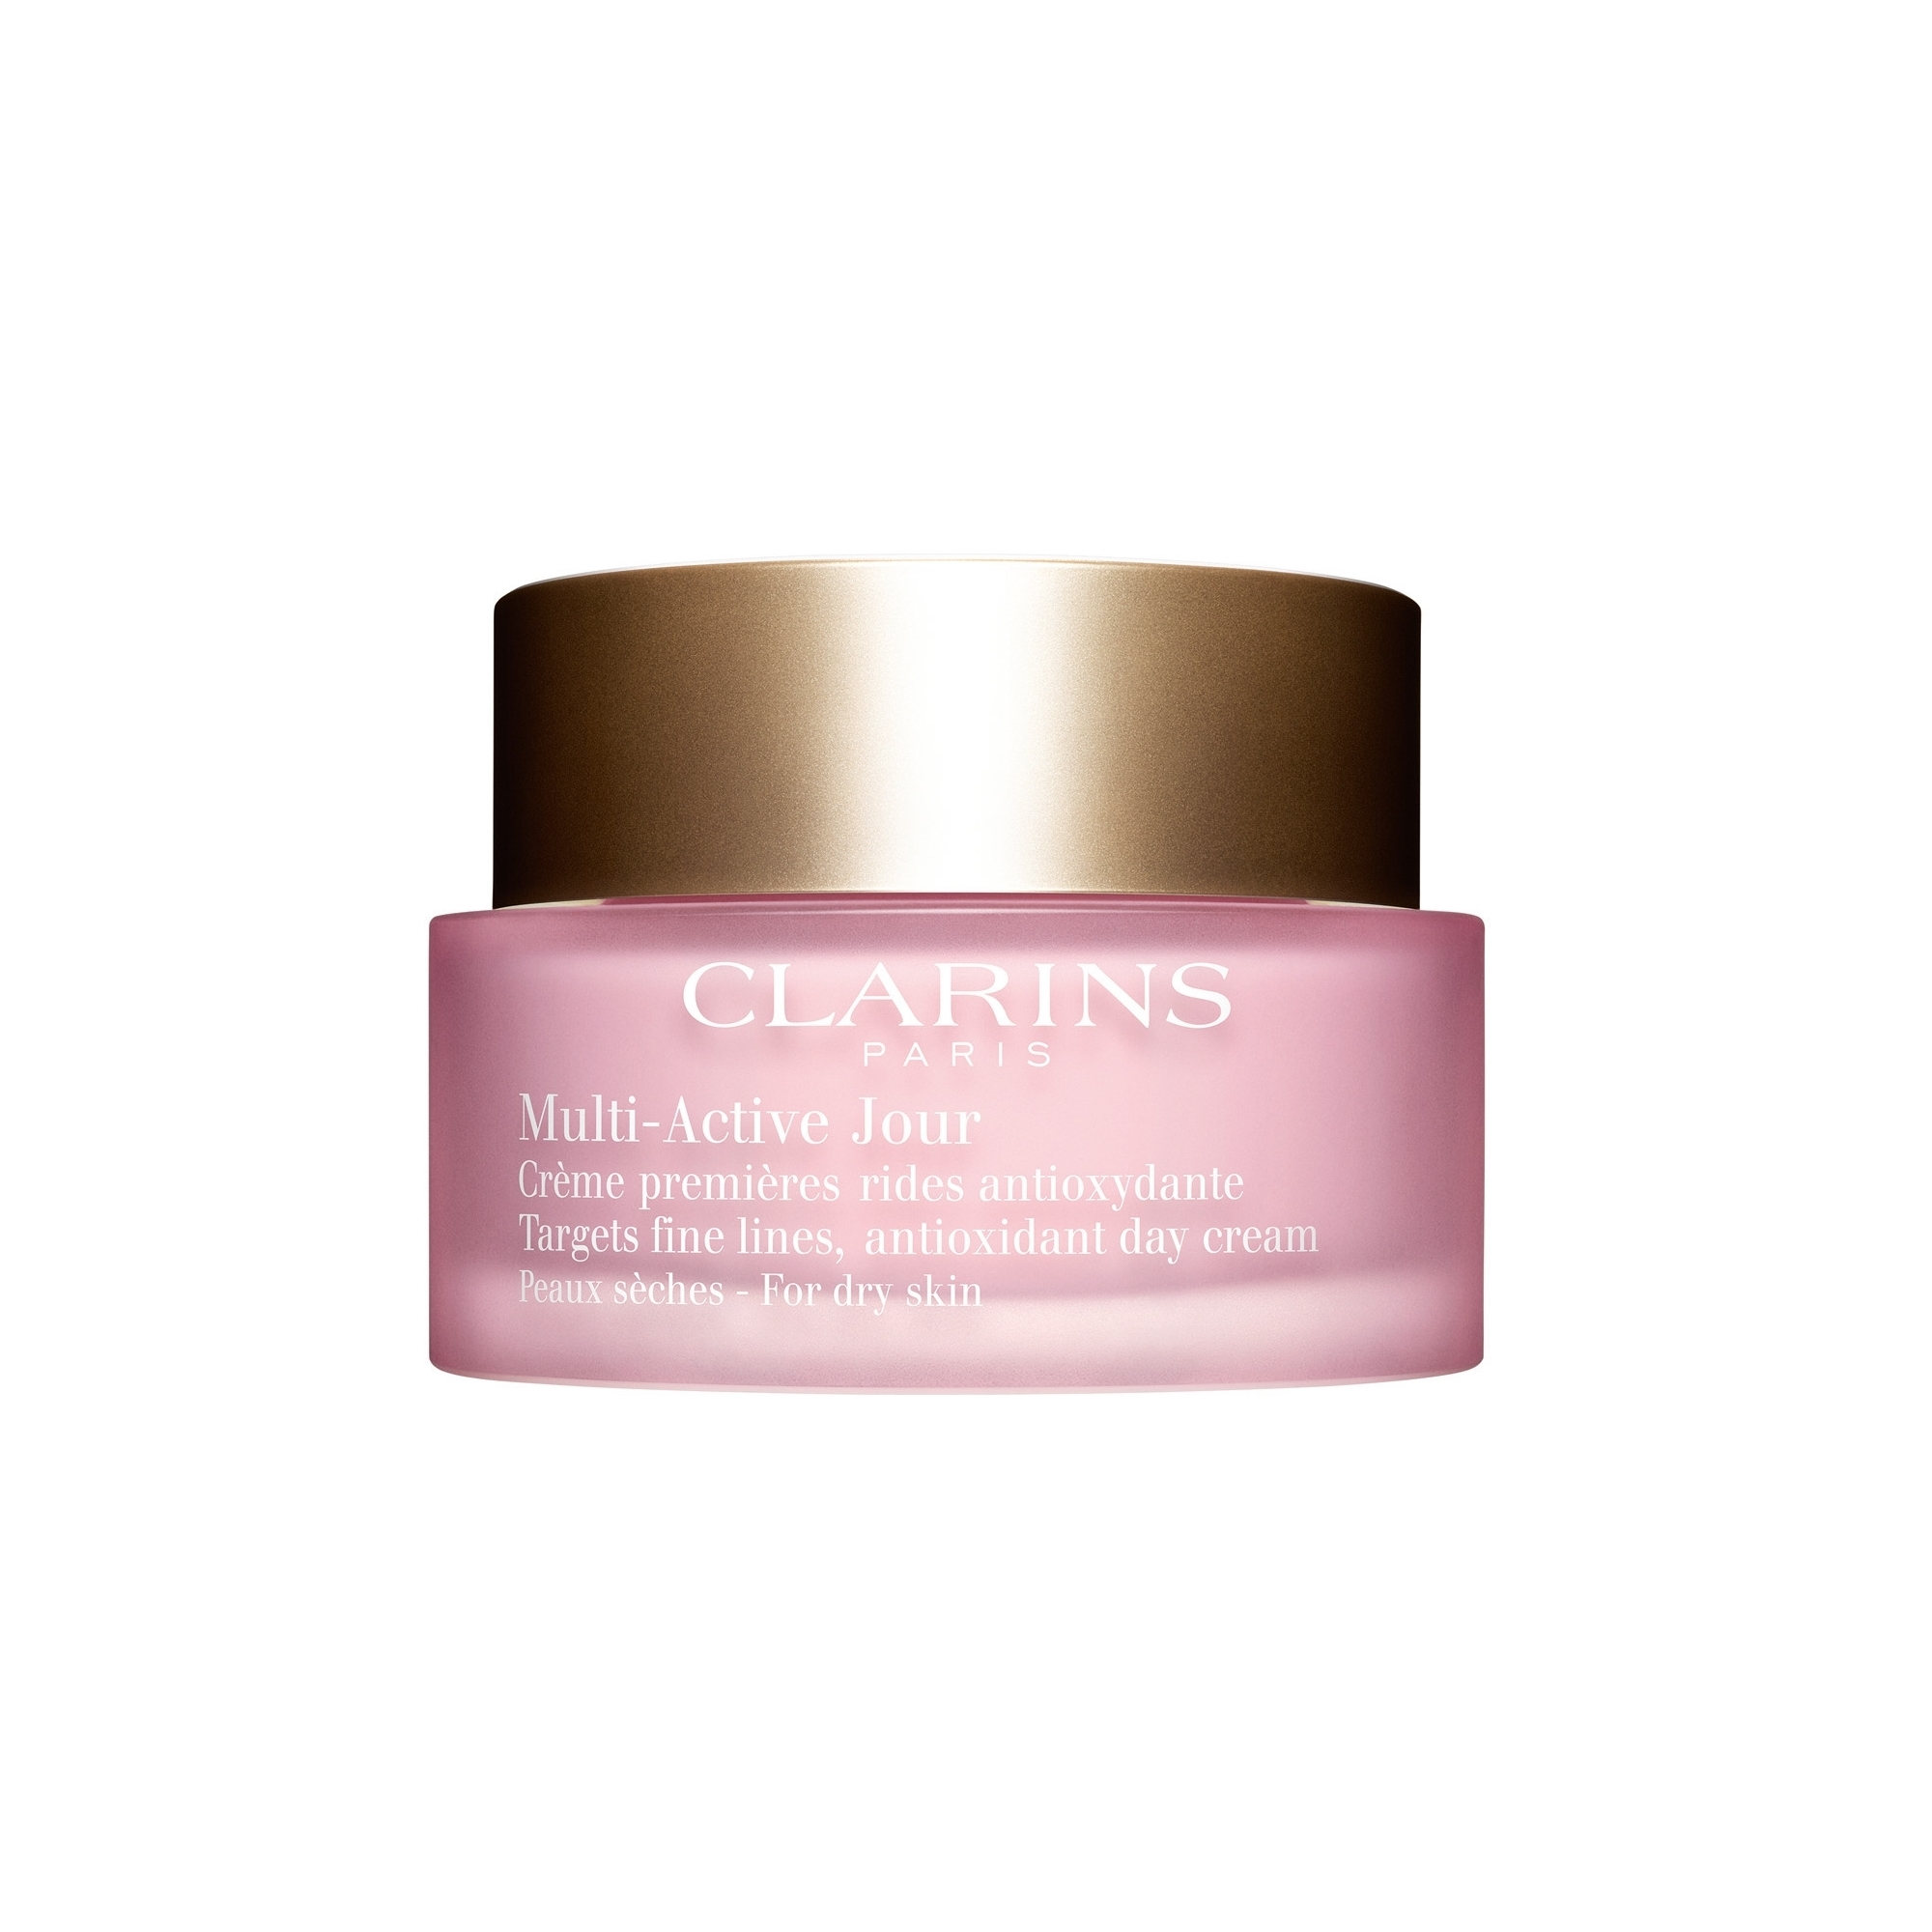 Multi-Active Jour Dry skin